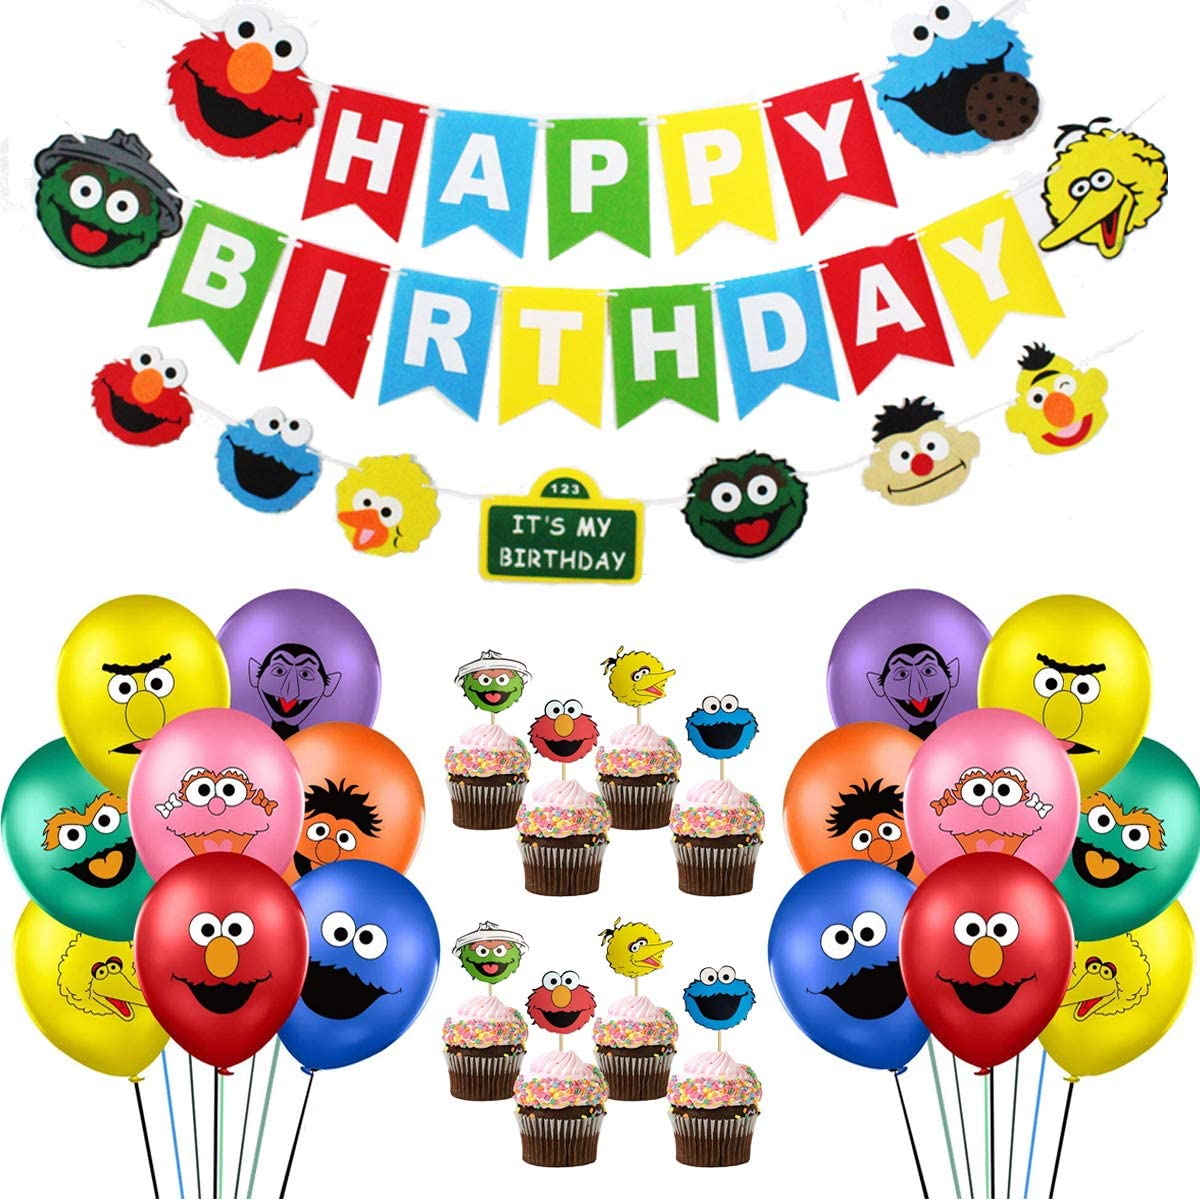 Sesame Birthday Party Supplies, 58Pcs Street Theme Party Decorations Includes Birthday Banner, Sesame Friends Elmo Garland, 24 Cake Toppers, 32 Latex Balloons for Kids Birthday Party, Baby Shower Decor